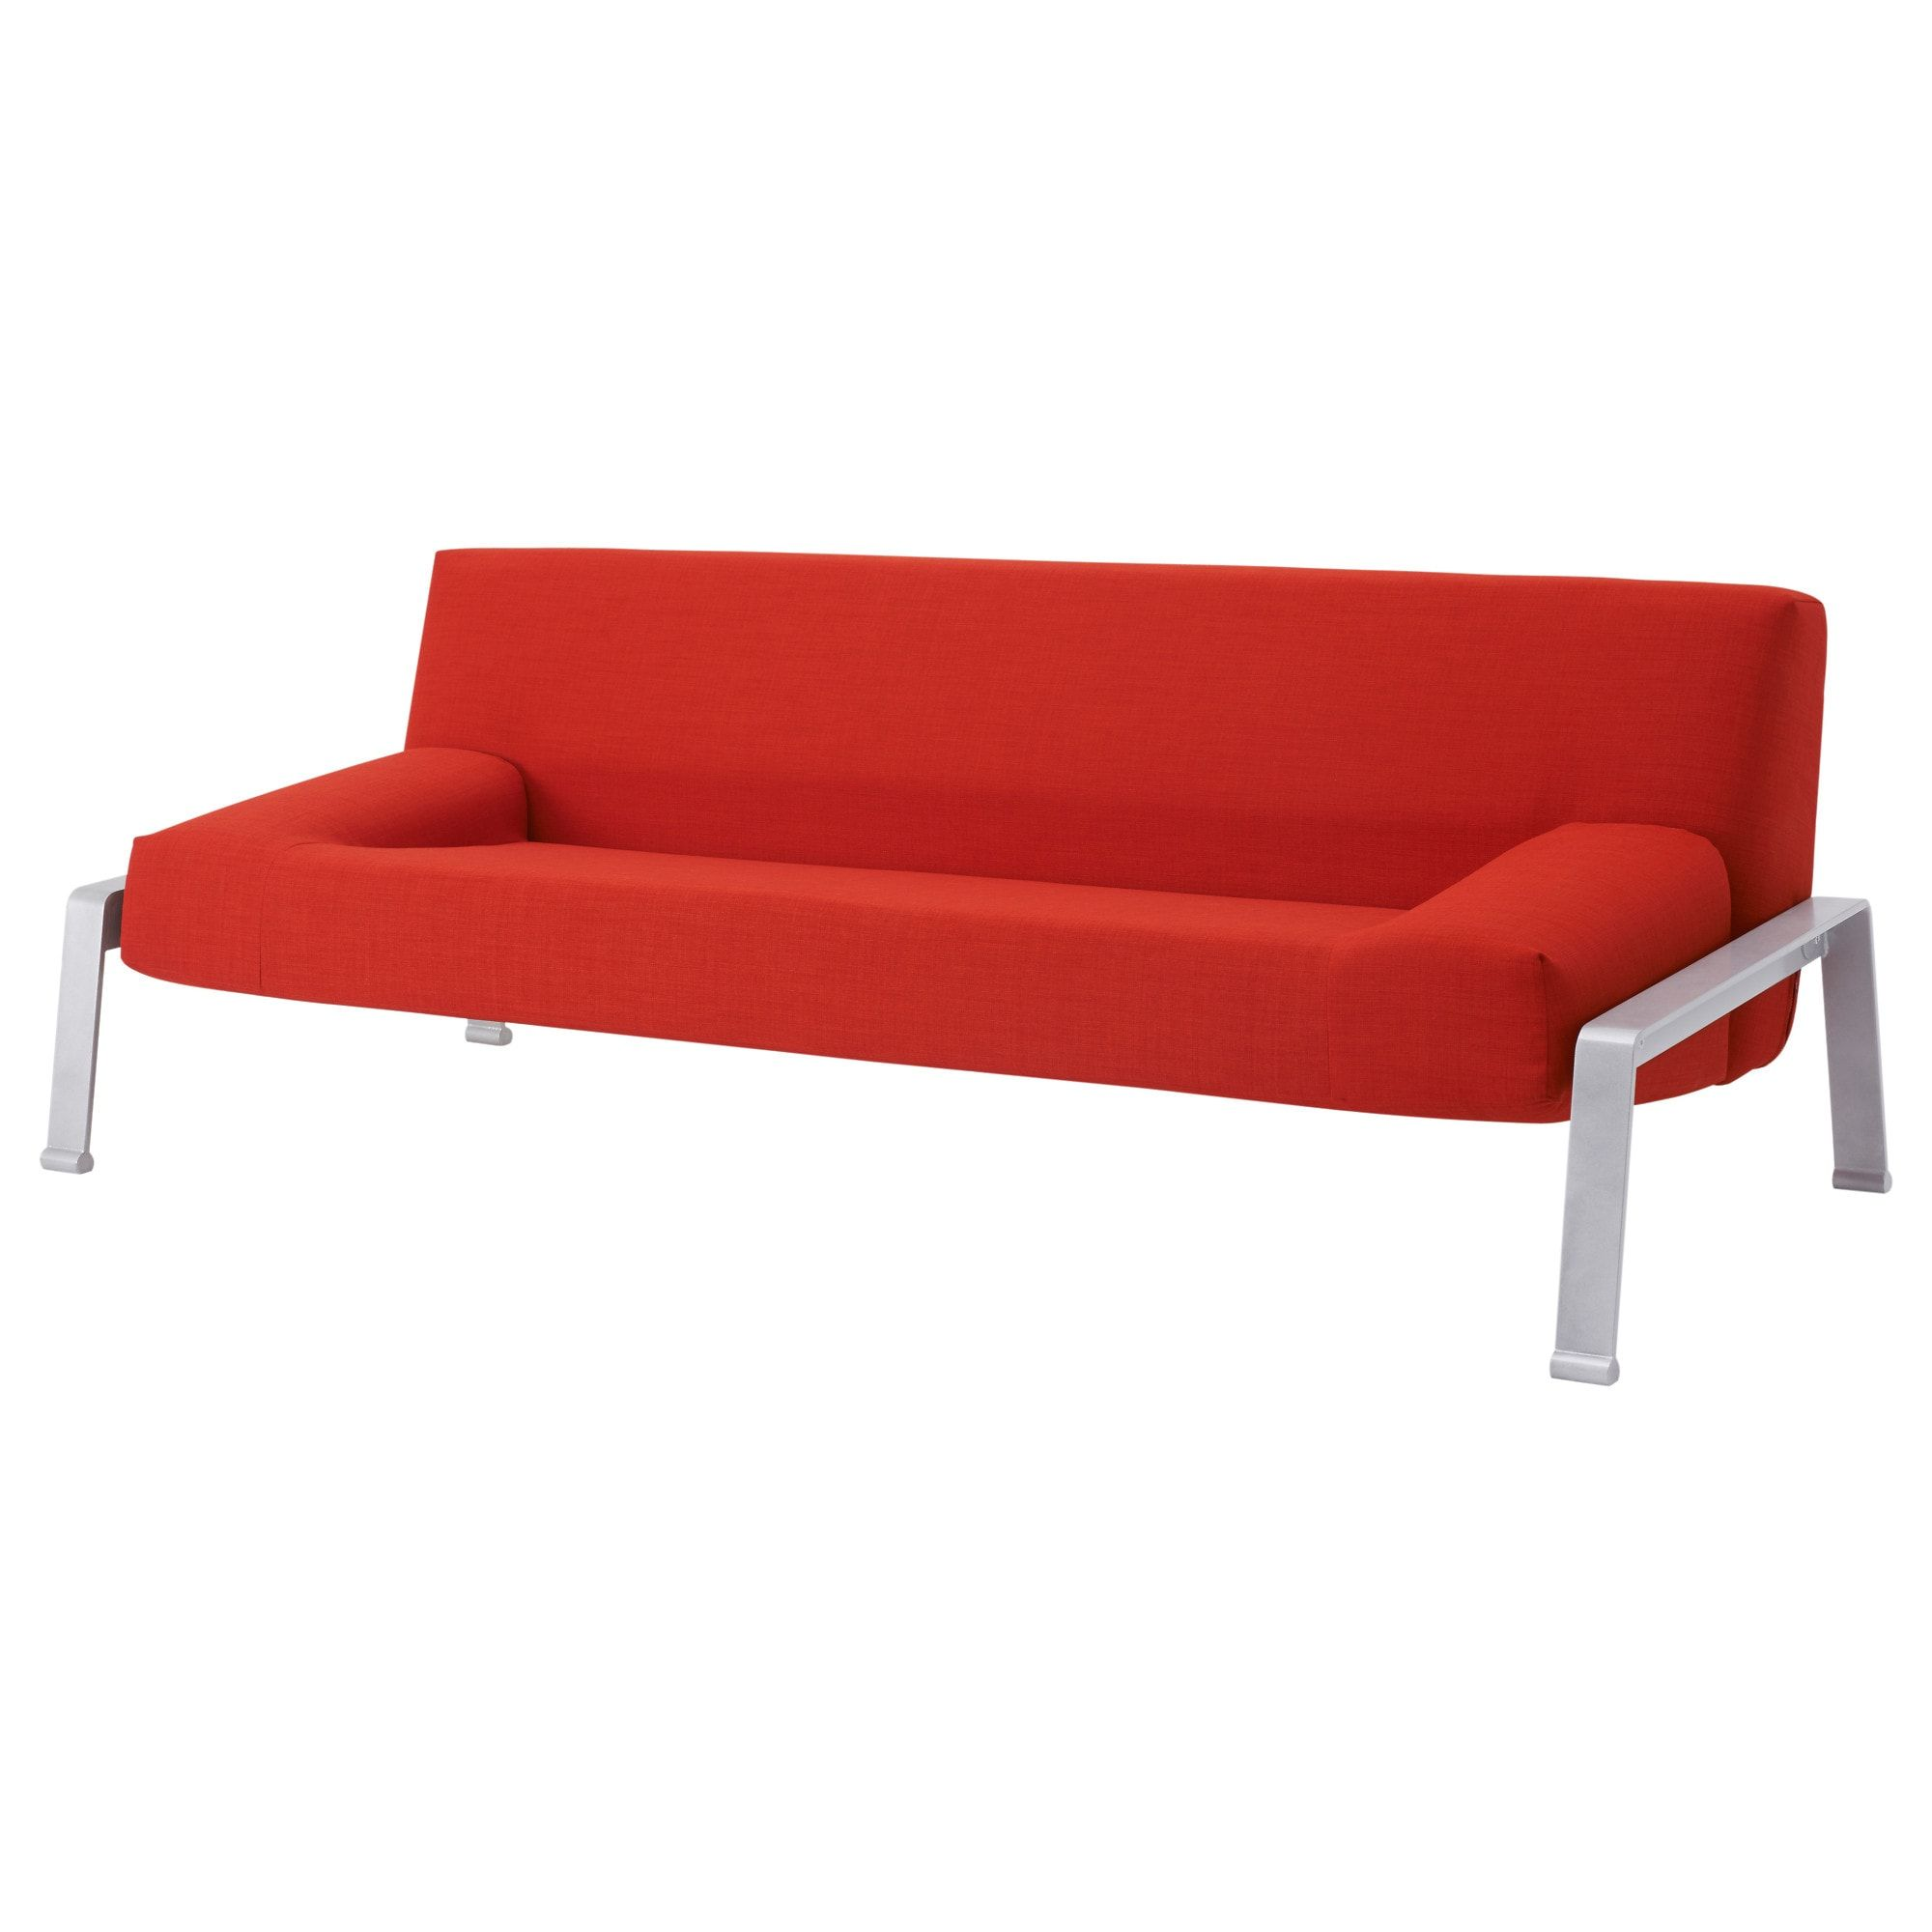 US Furniture and Home Furnishings Ikea sofa bed, Sofa